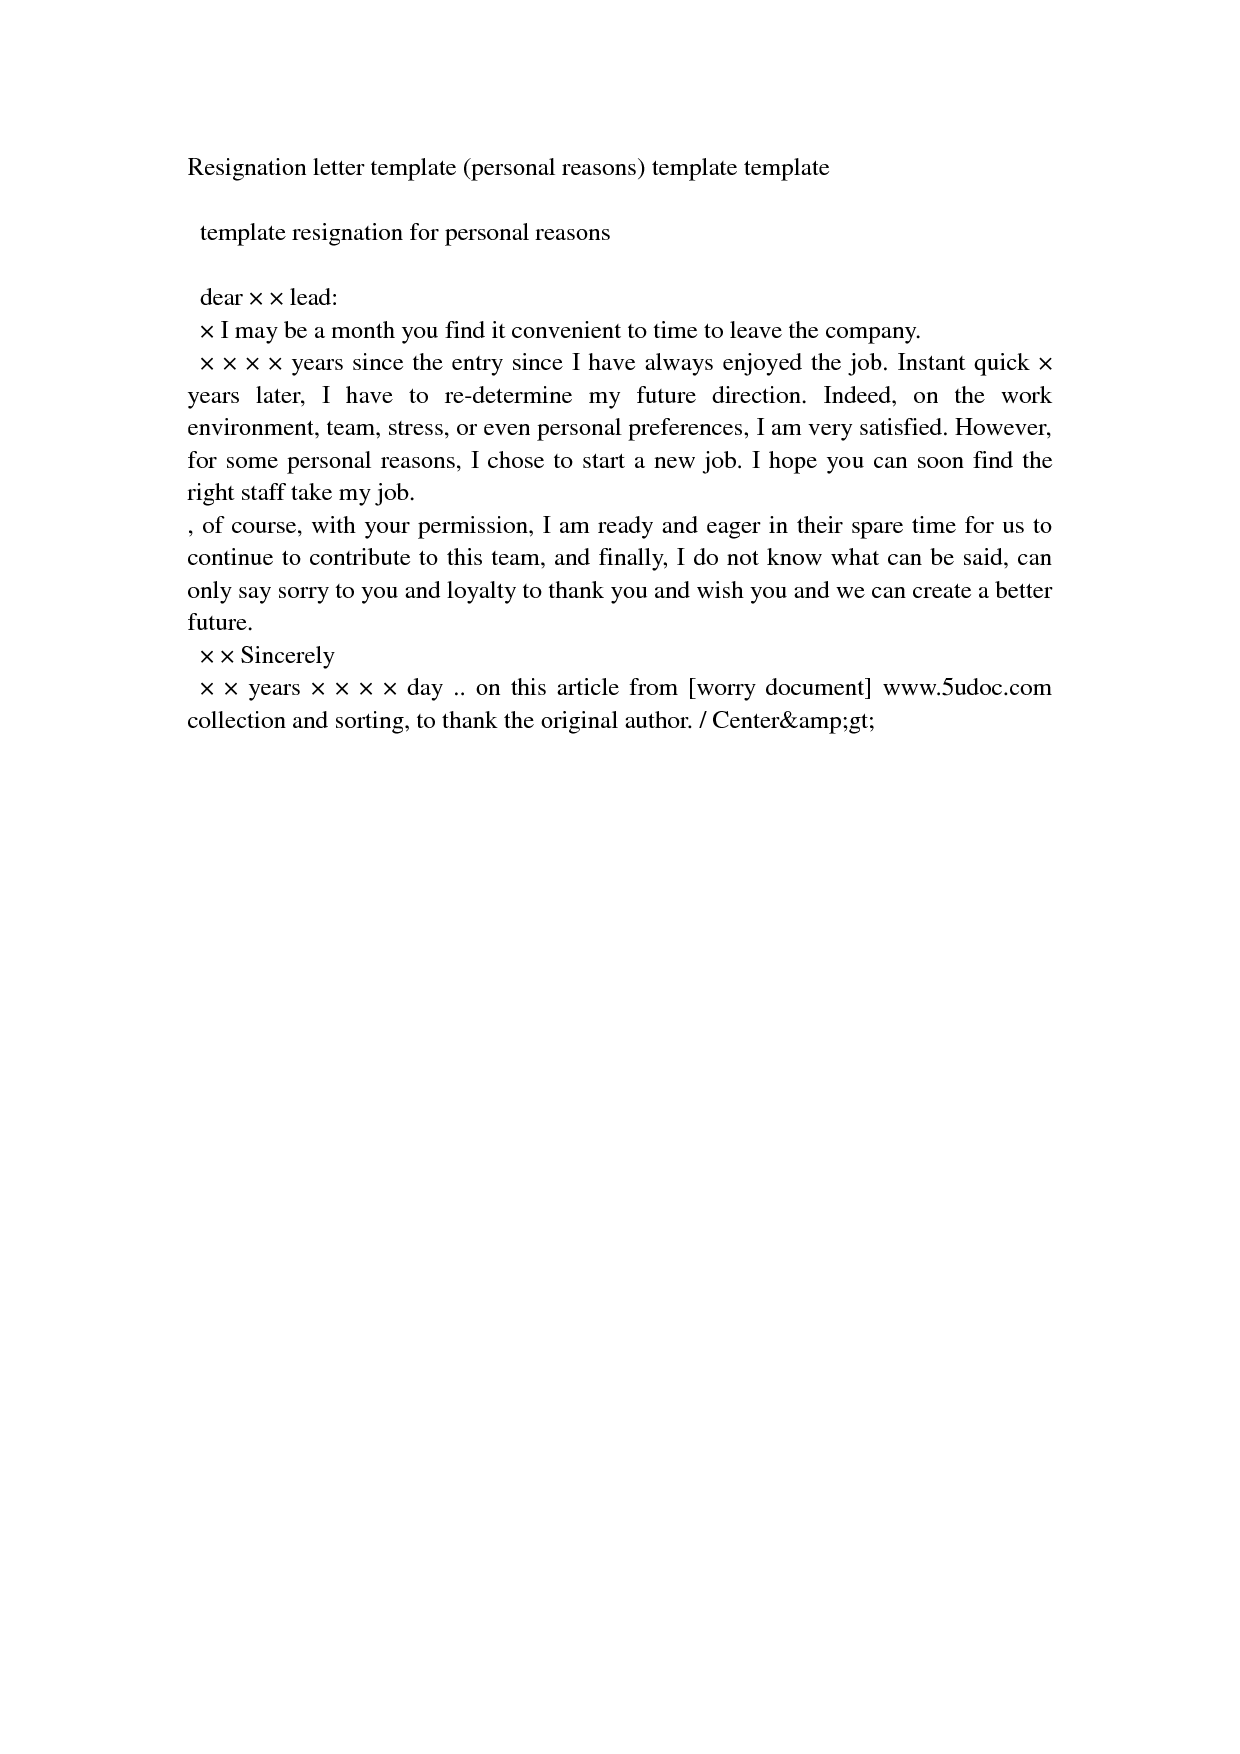 Resign Letter For Personalwriting A Letter Of Resignation Email